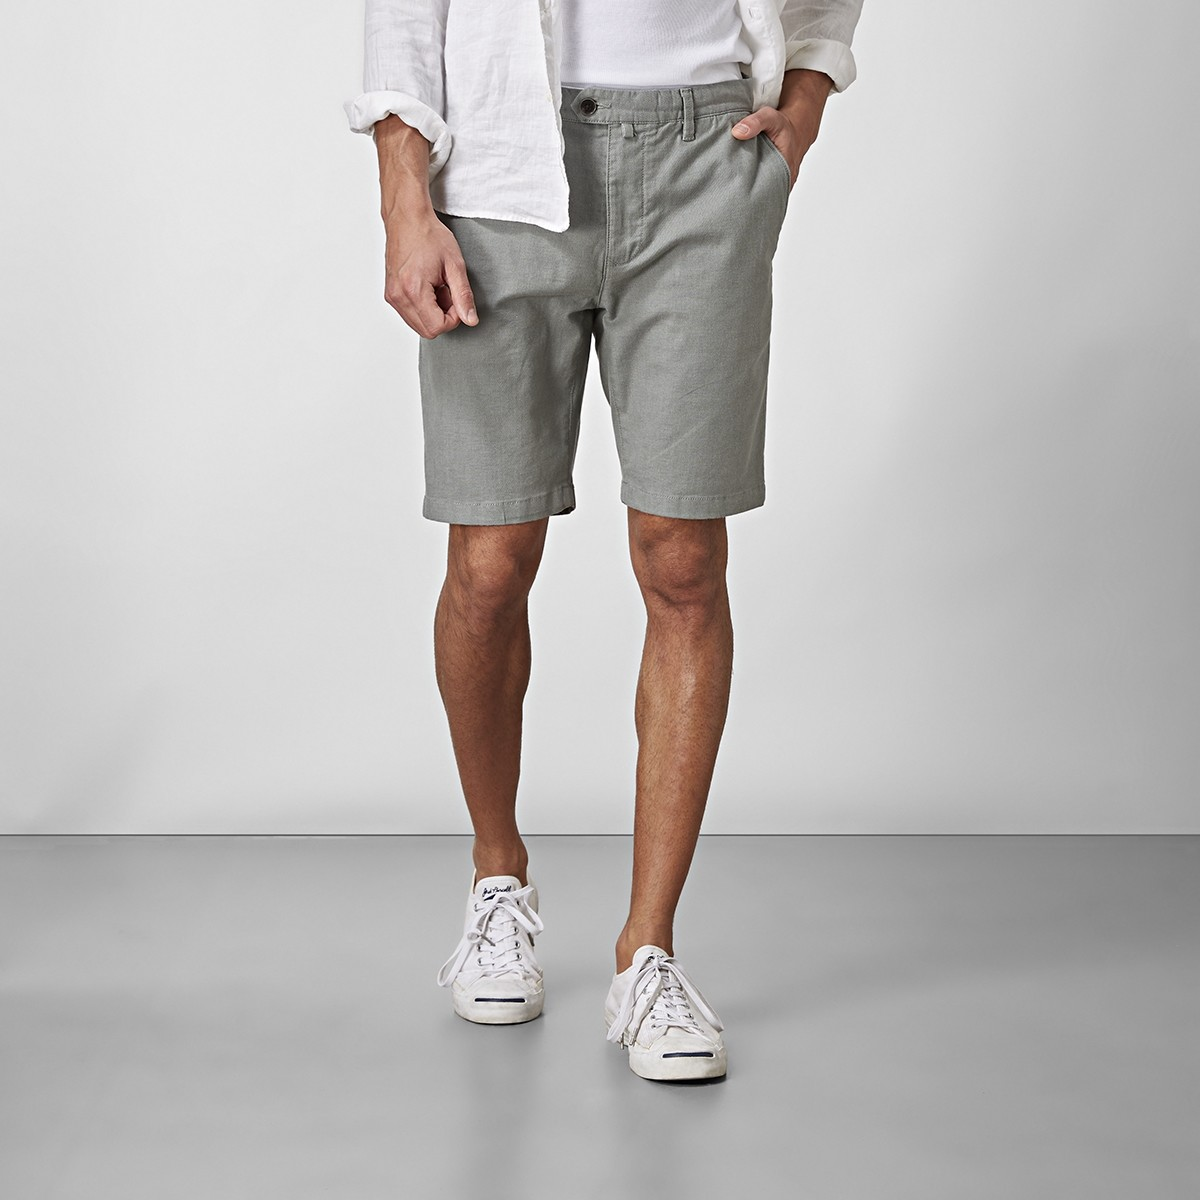 Bowery Chinos Shorts Grön | East West | Brothers.se